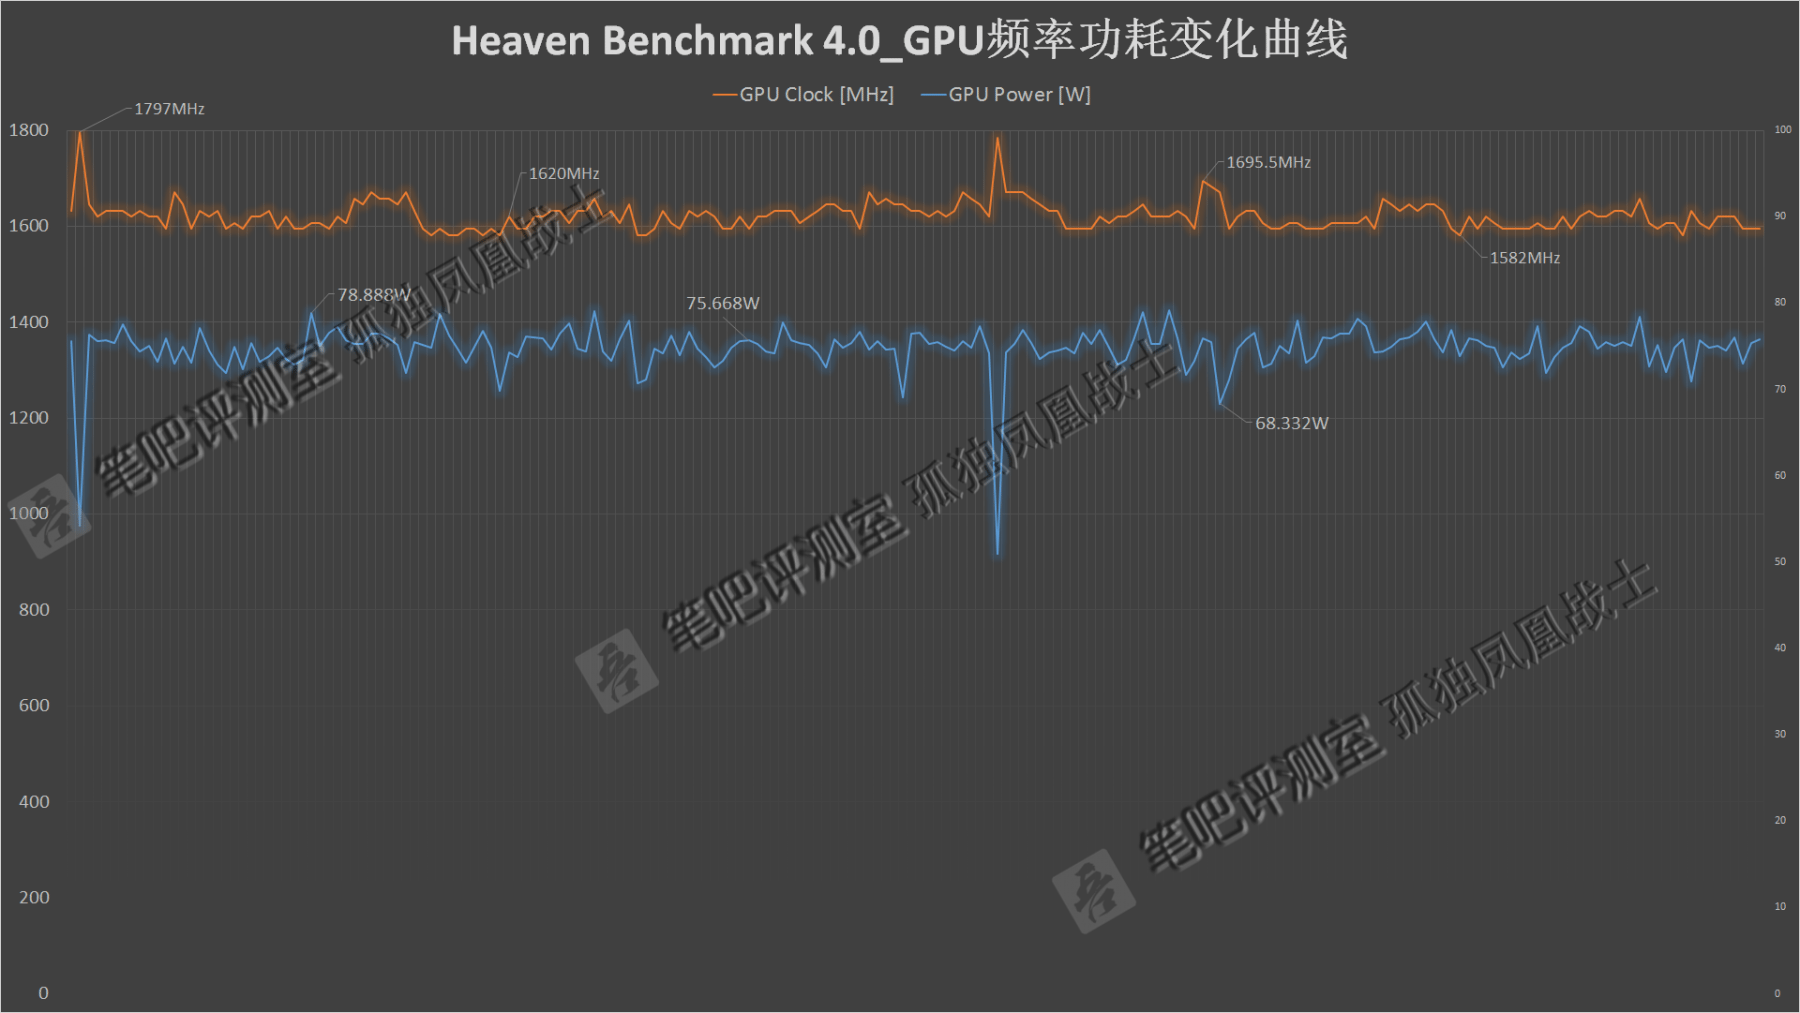 Heaven Benchmark 4.0 (Image source: Videocardz.com